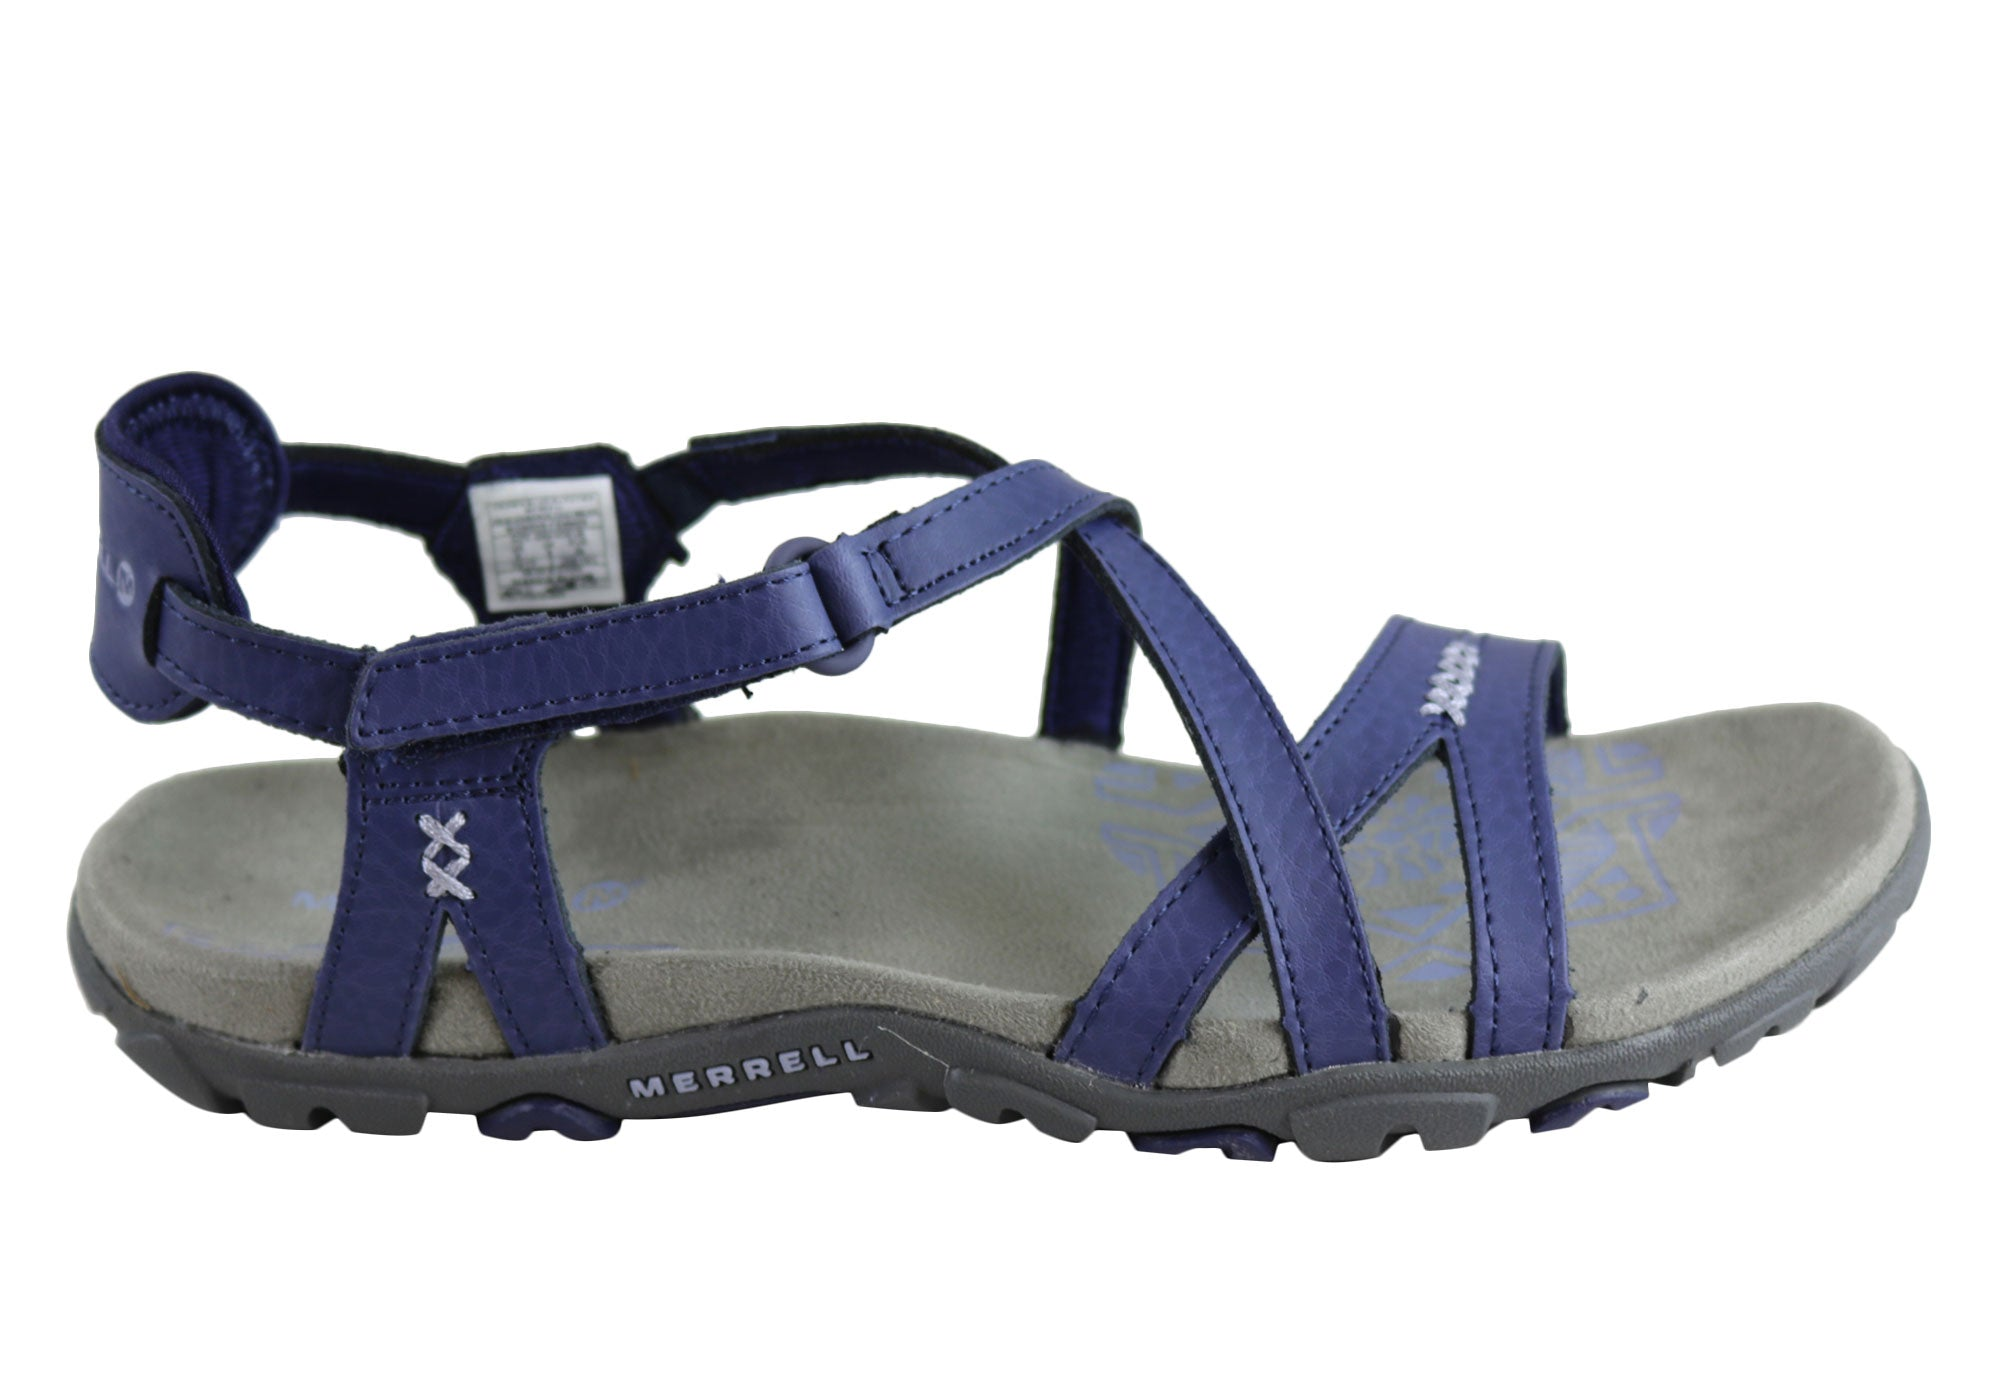 c5b2bbc5960 Home Merrell Womens Comfort Flat Supportive Sandspur Rose Leather Sandals.  Blue ...